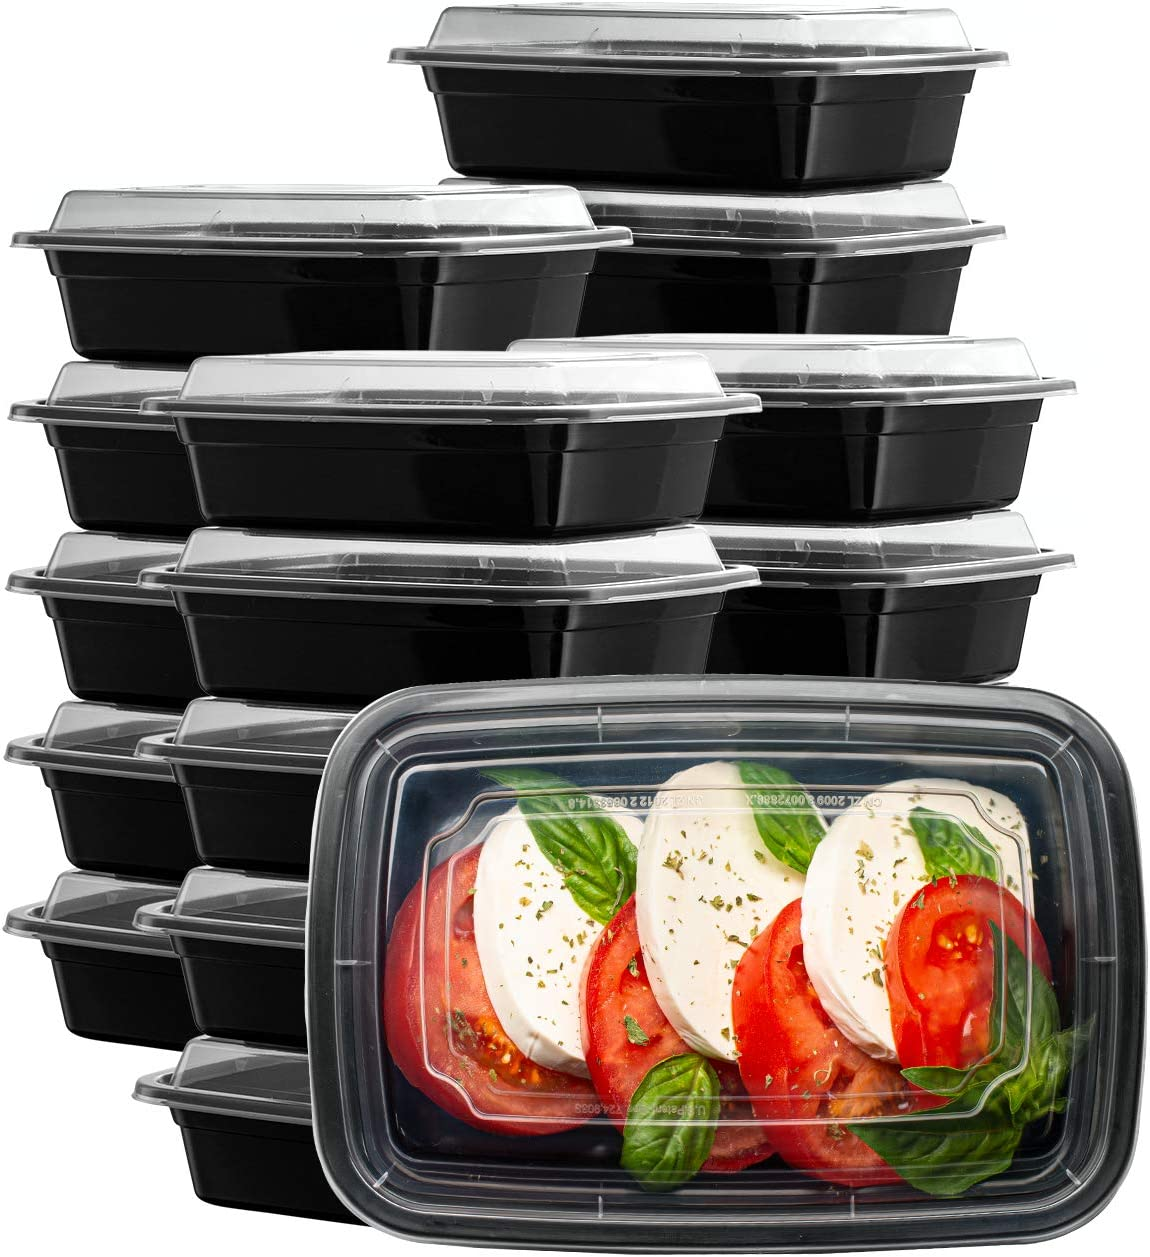 [50 Sets - 24 oz.] Meal Prep Containers With Lids, 1 Compartment Lunch Containers, Bento Boxes, Food Storage Containers